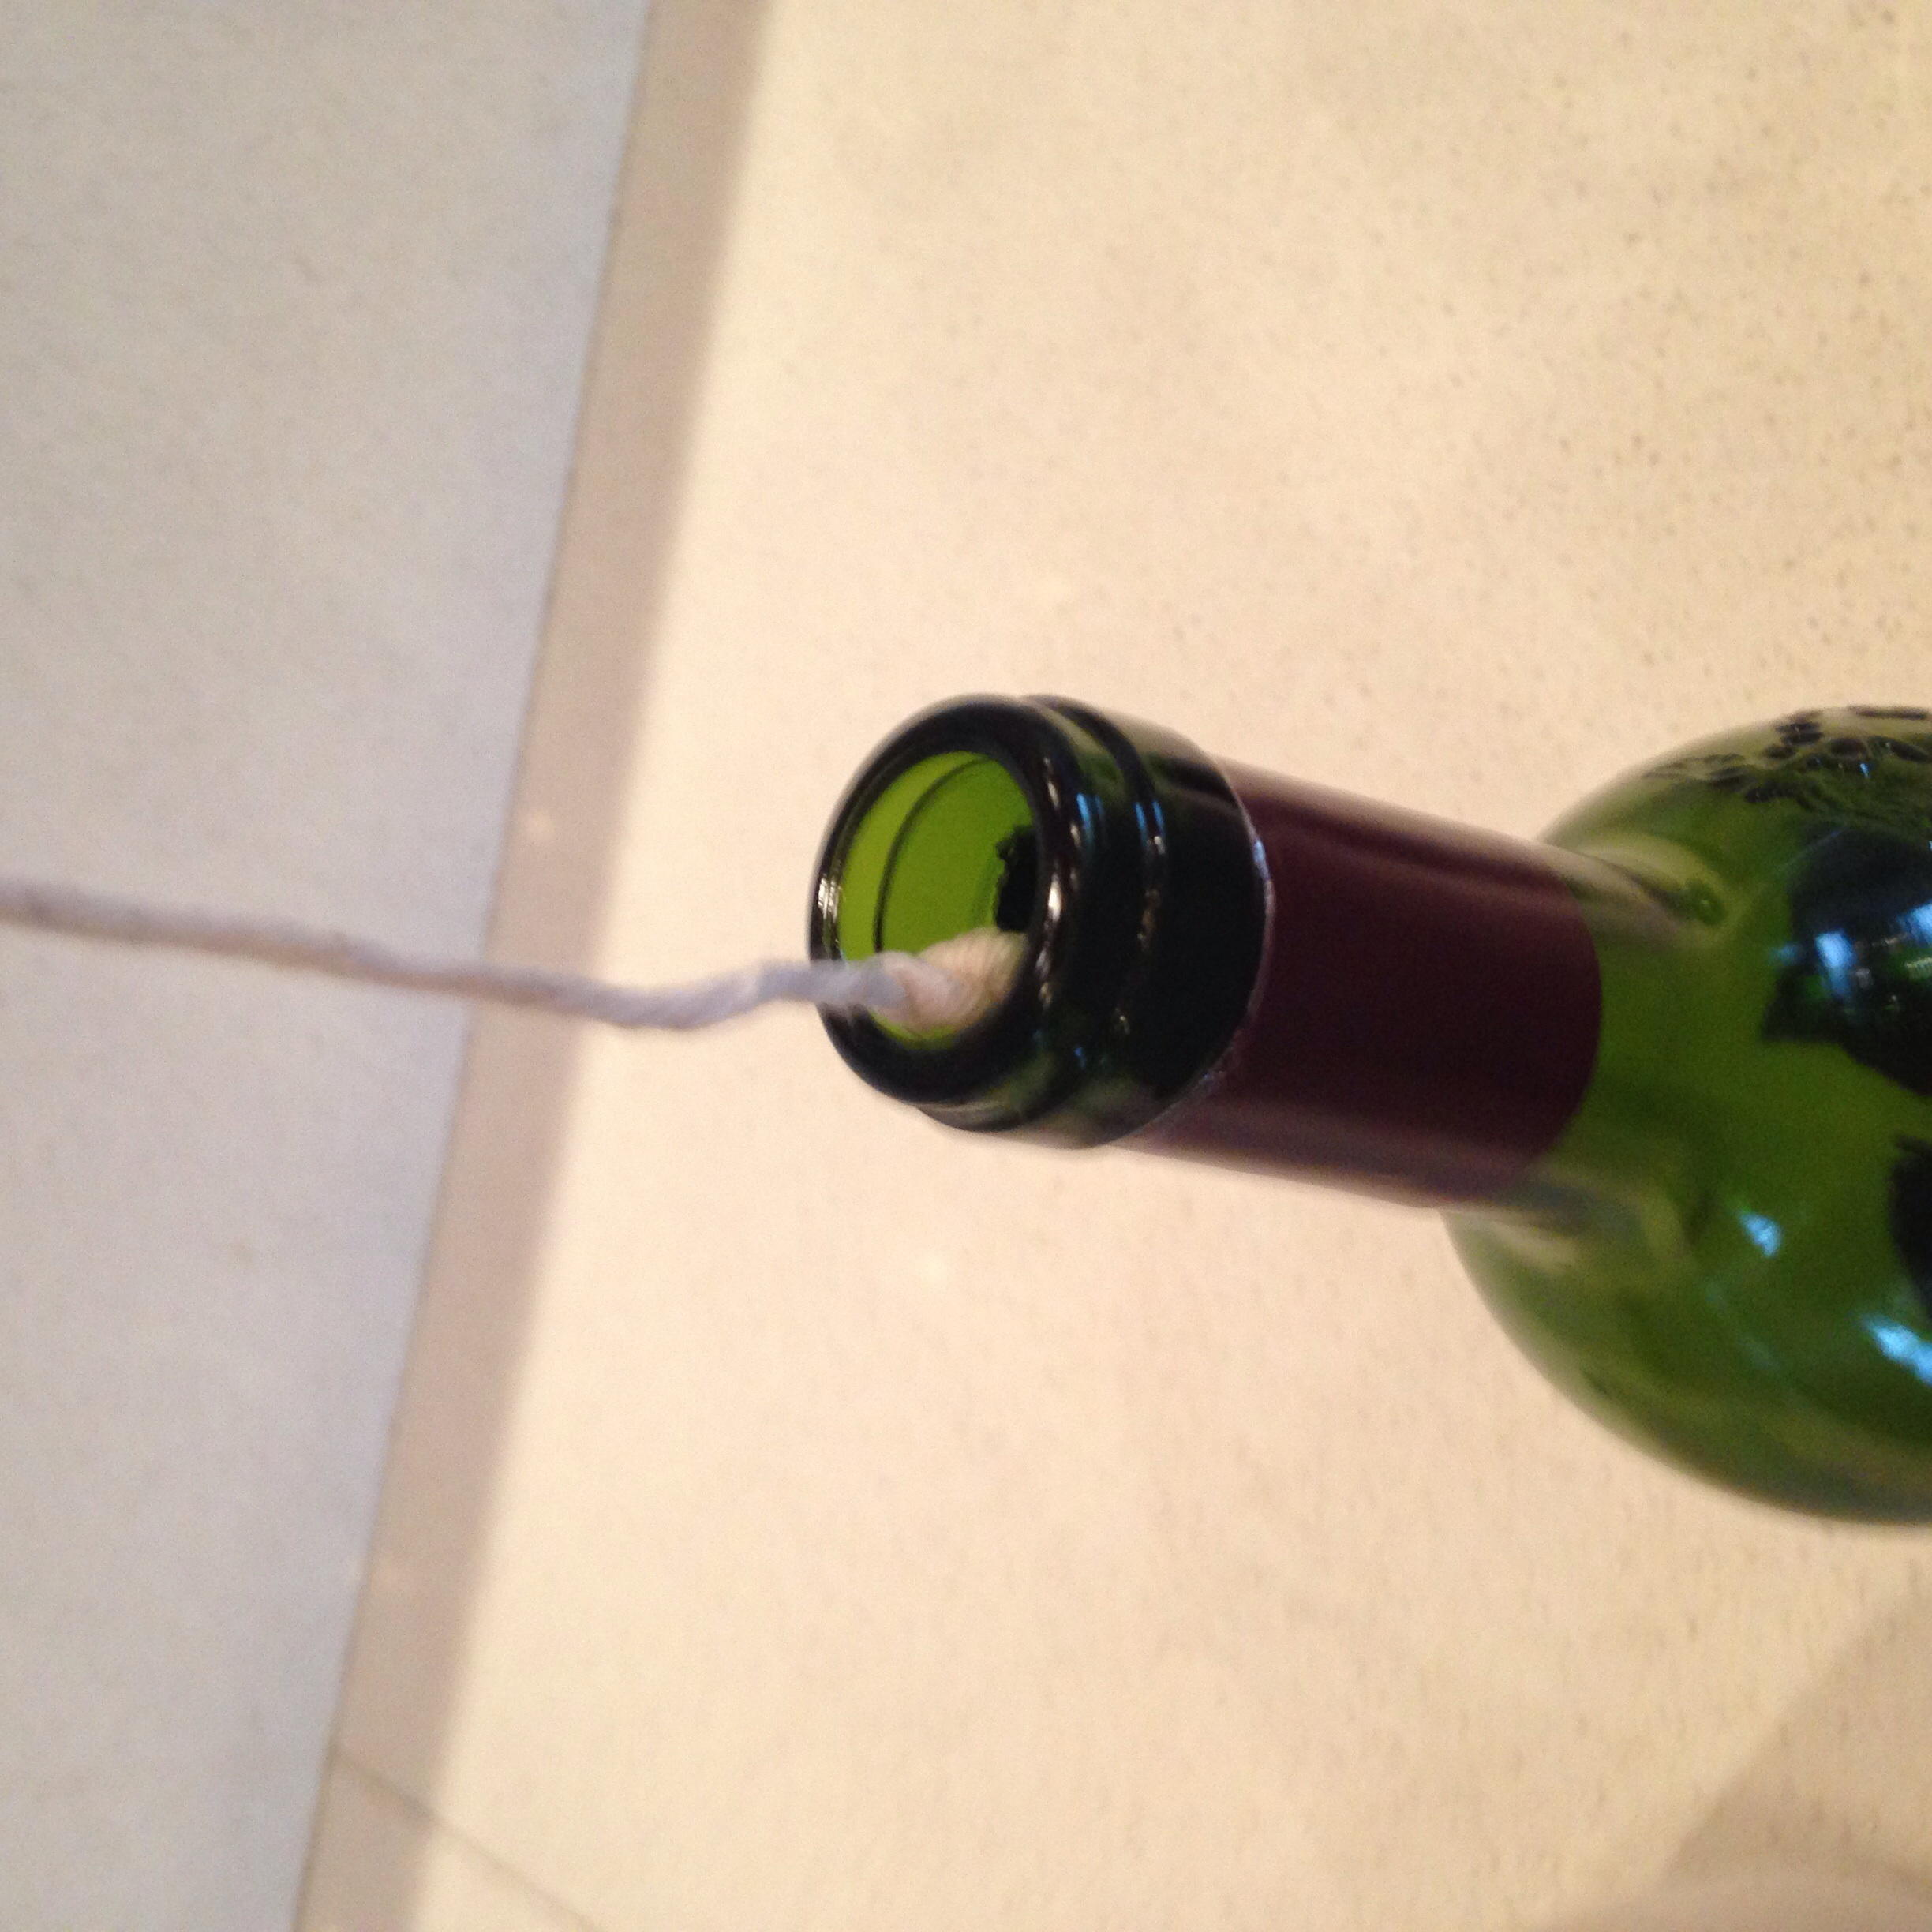 Step 4: Insert twine, knot-side first into the bottle.